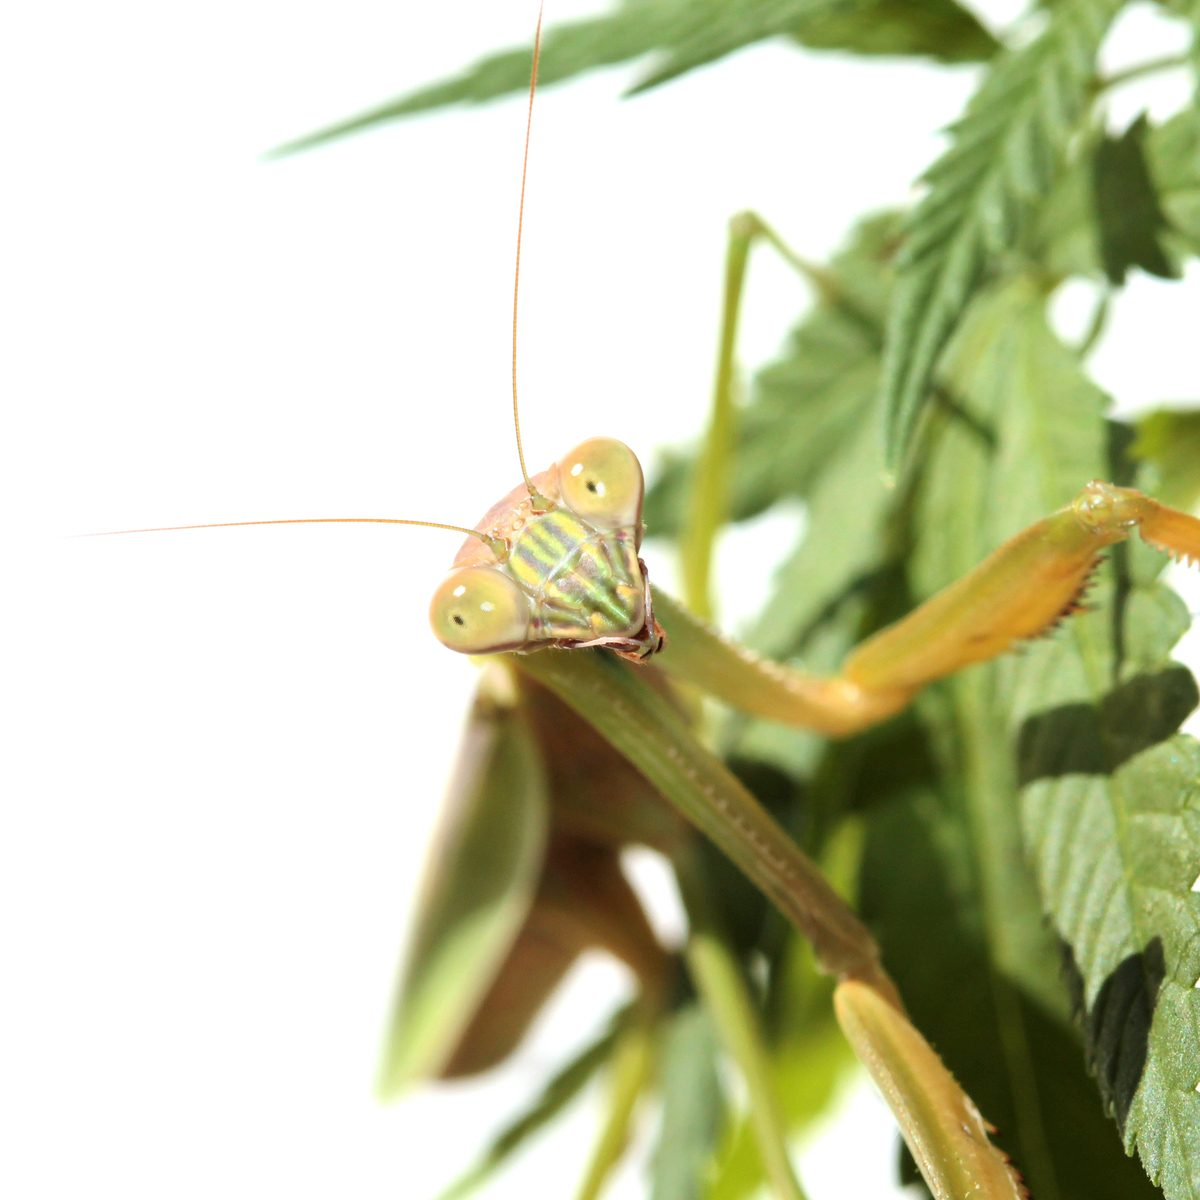 organic pesticide pf praying mantis sitting on cannabis leaf